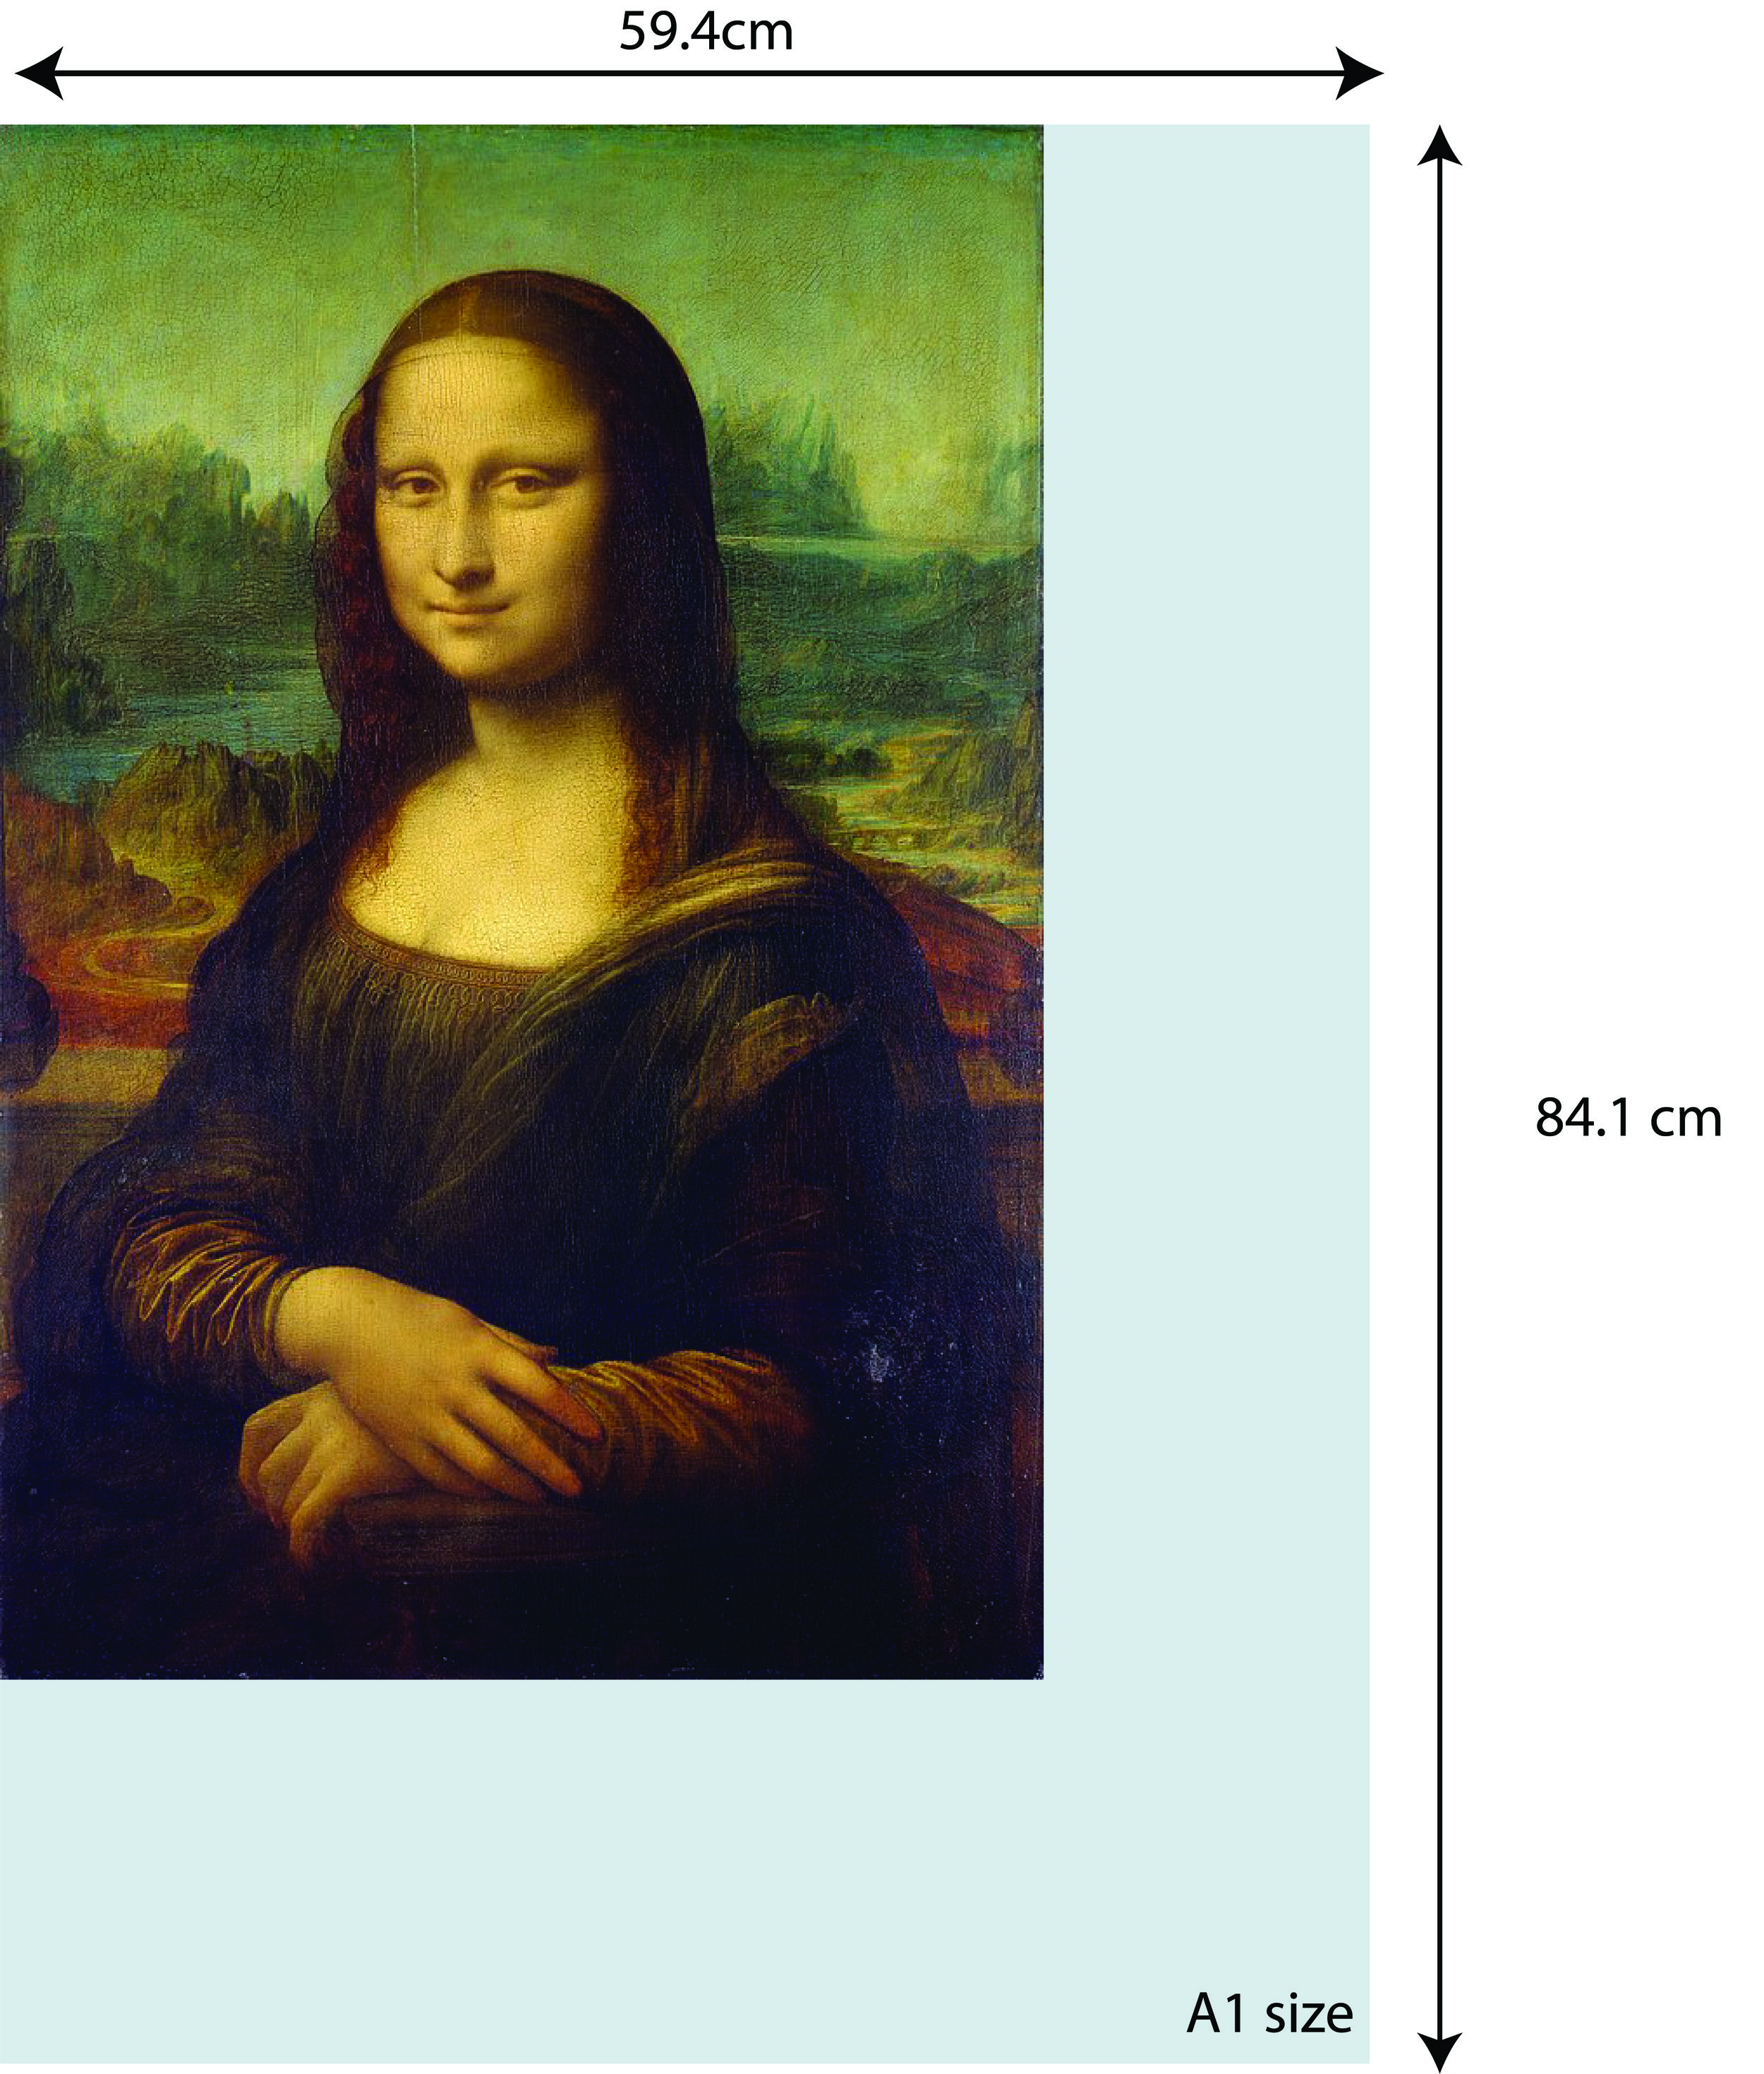 So I will need to choose an A1 size (54.9cm x 84.1cm) so that my picture is able to fit in the dimension.